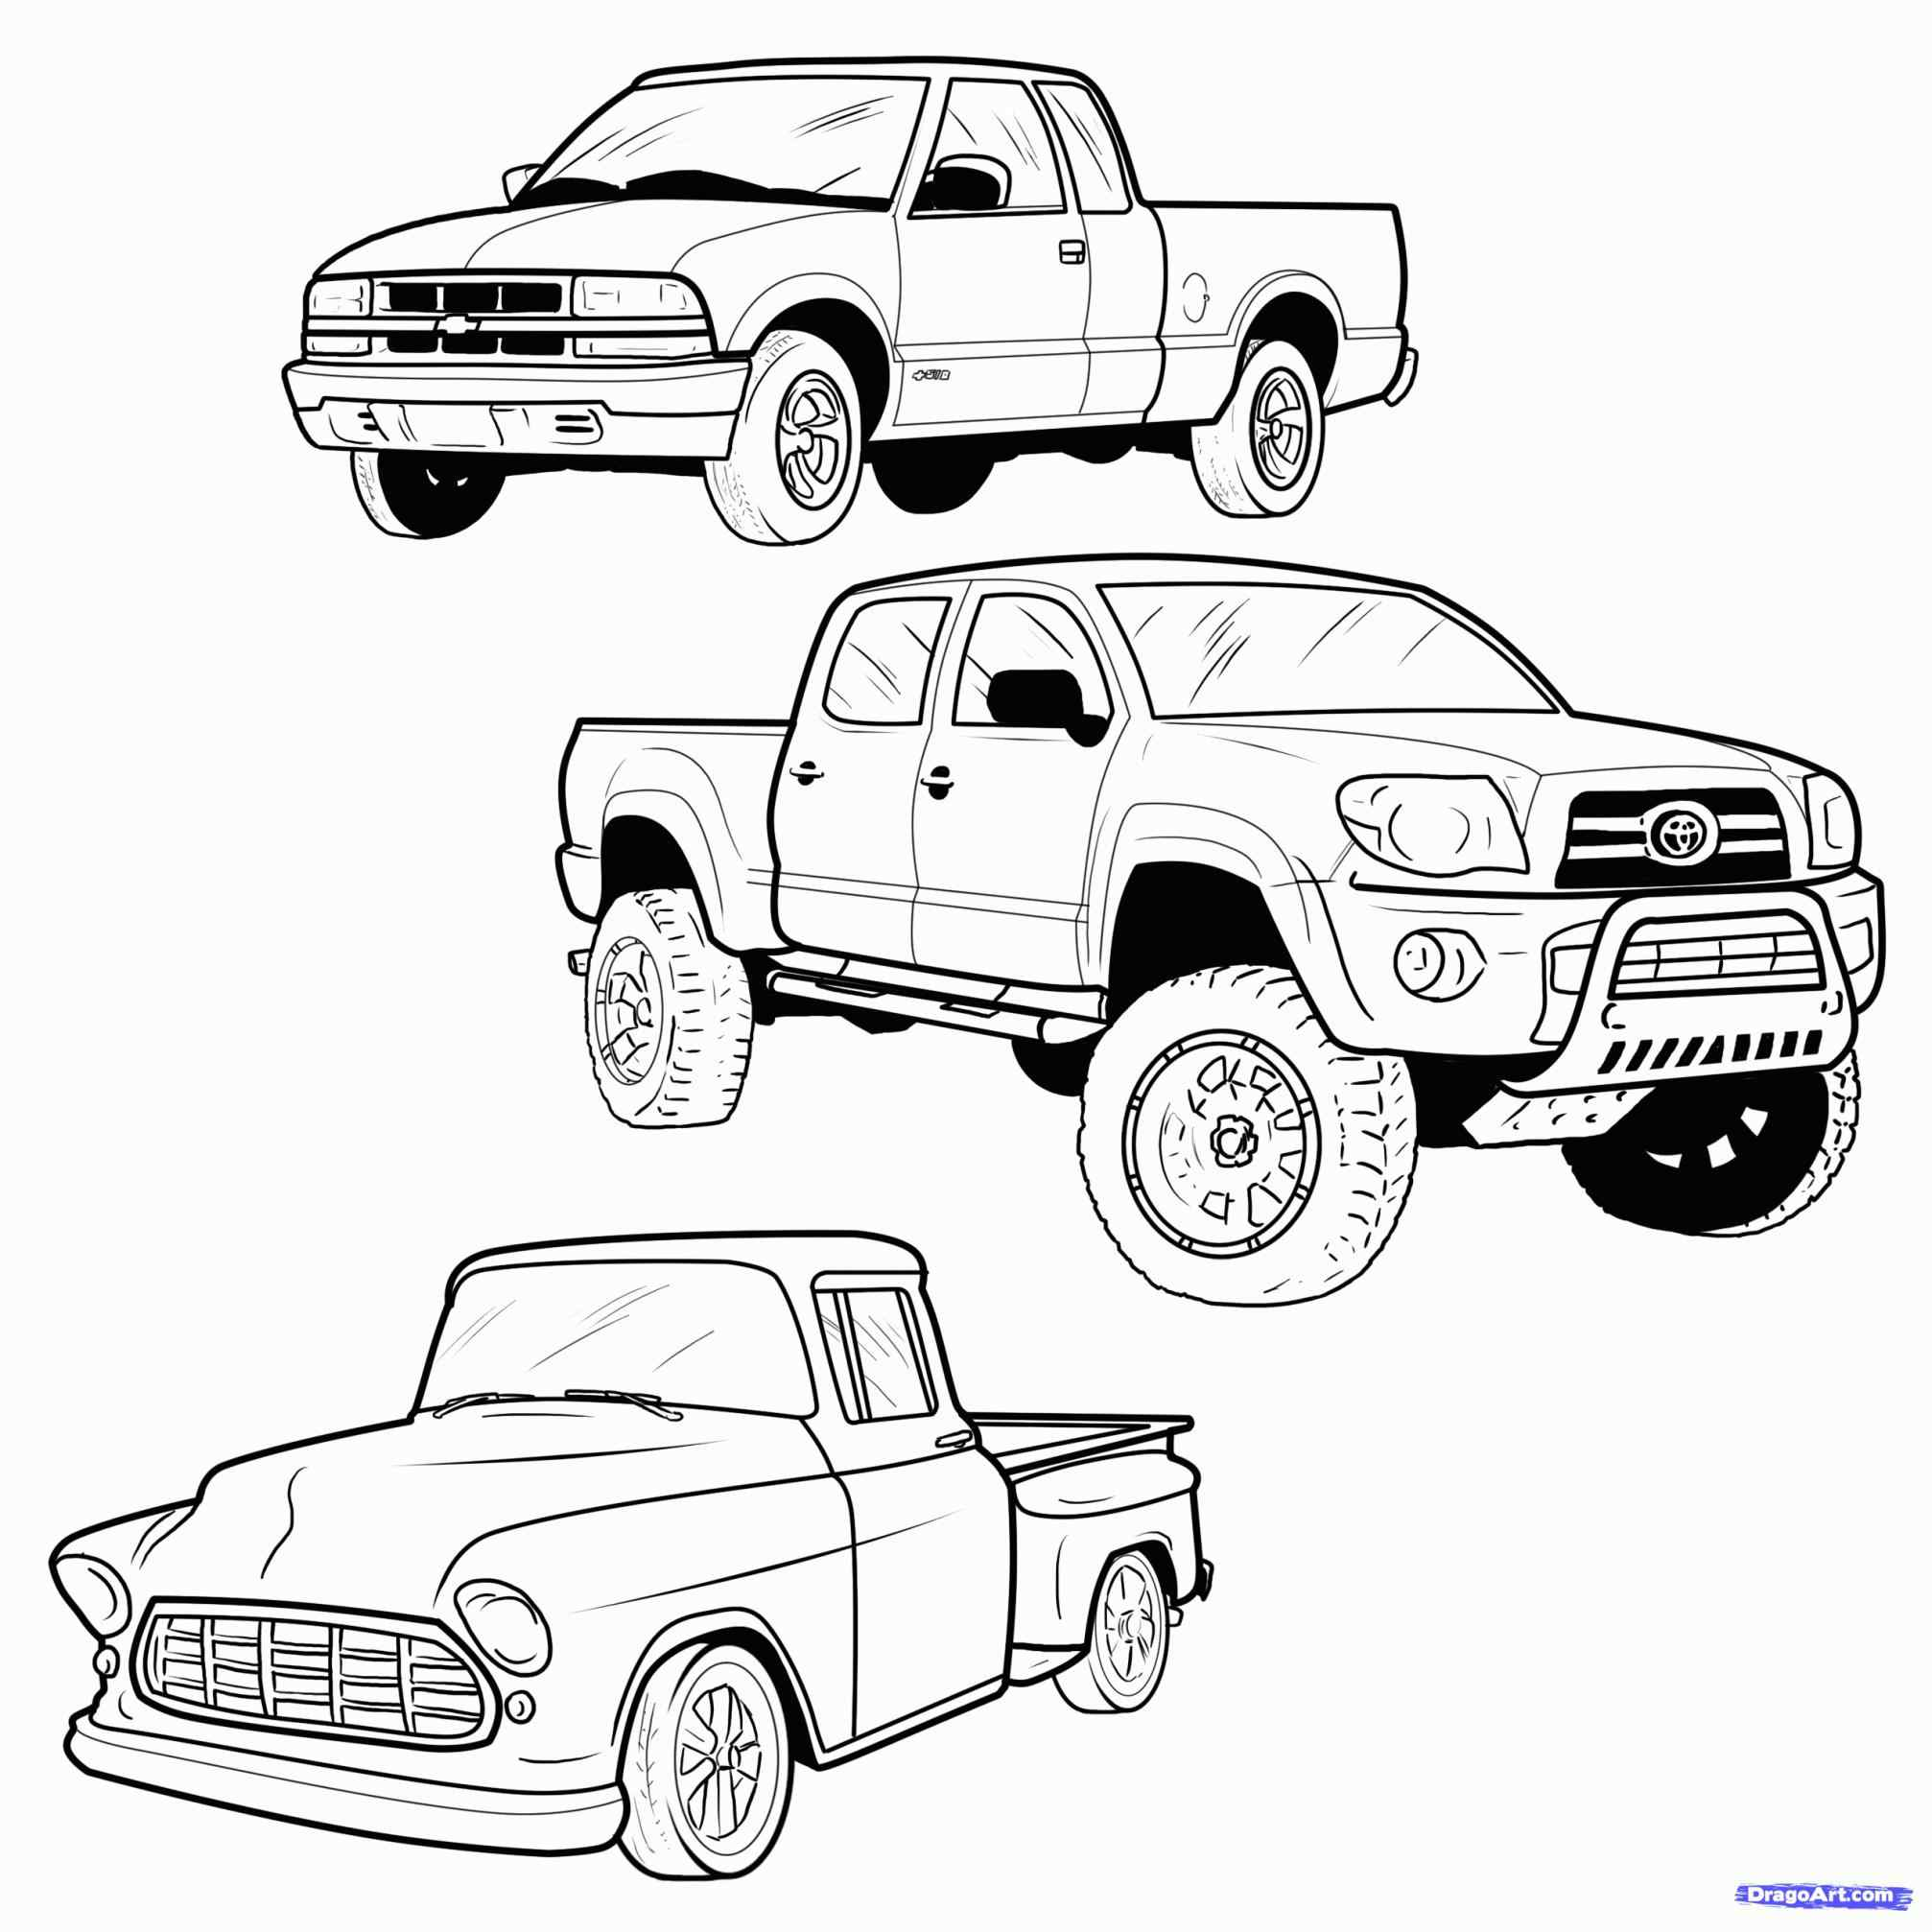 57 Chevy Drawing At Getdrawings